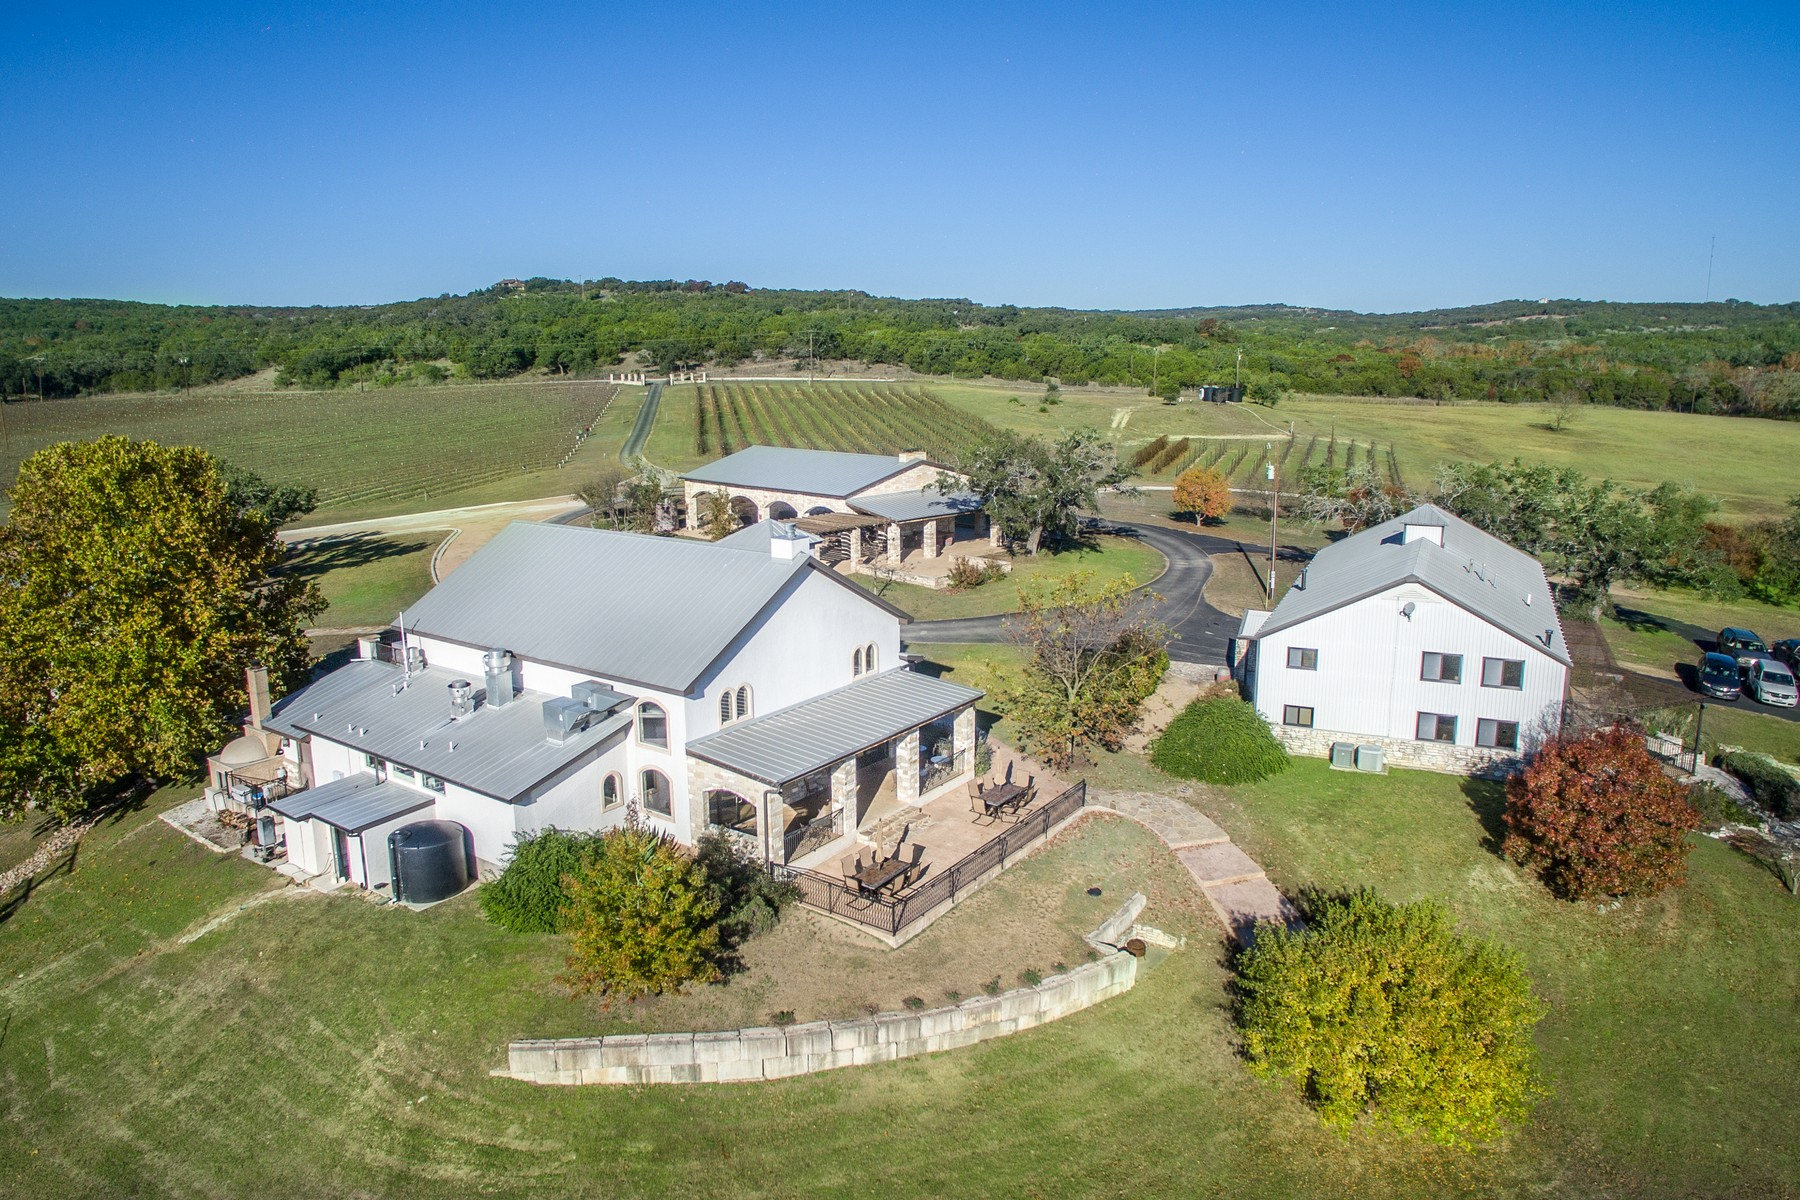 Maison unifamiliale pour l Vente à The Crown Jewel of Texas Wineries 24912 Singleton Bend East Rd, Marble Falls, Texas, 78654 États-Unis